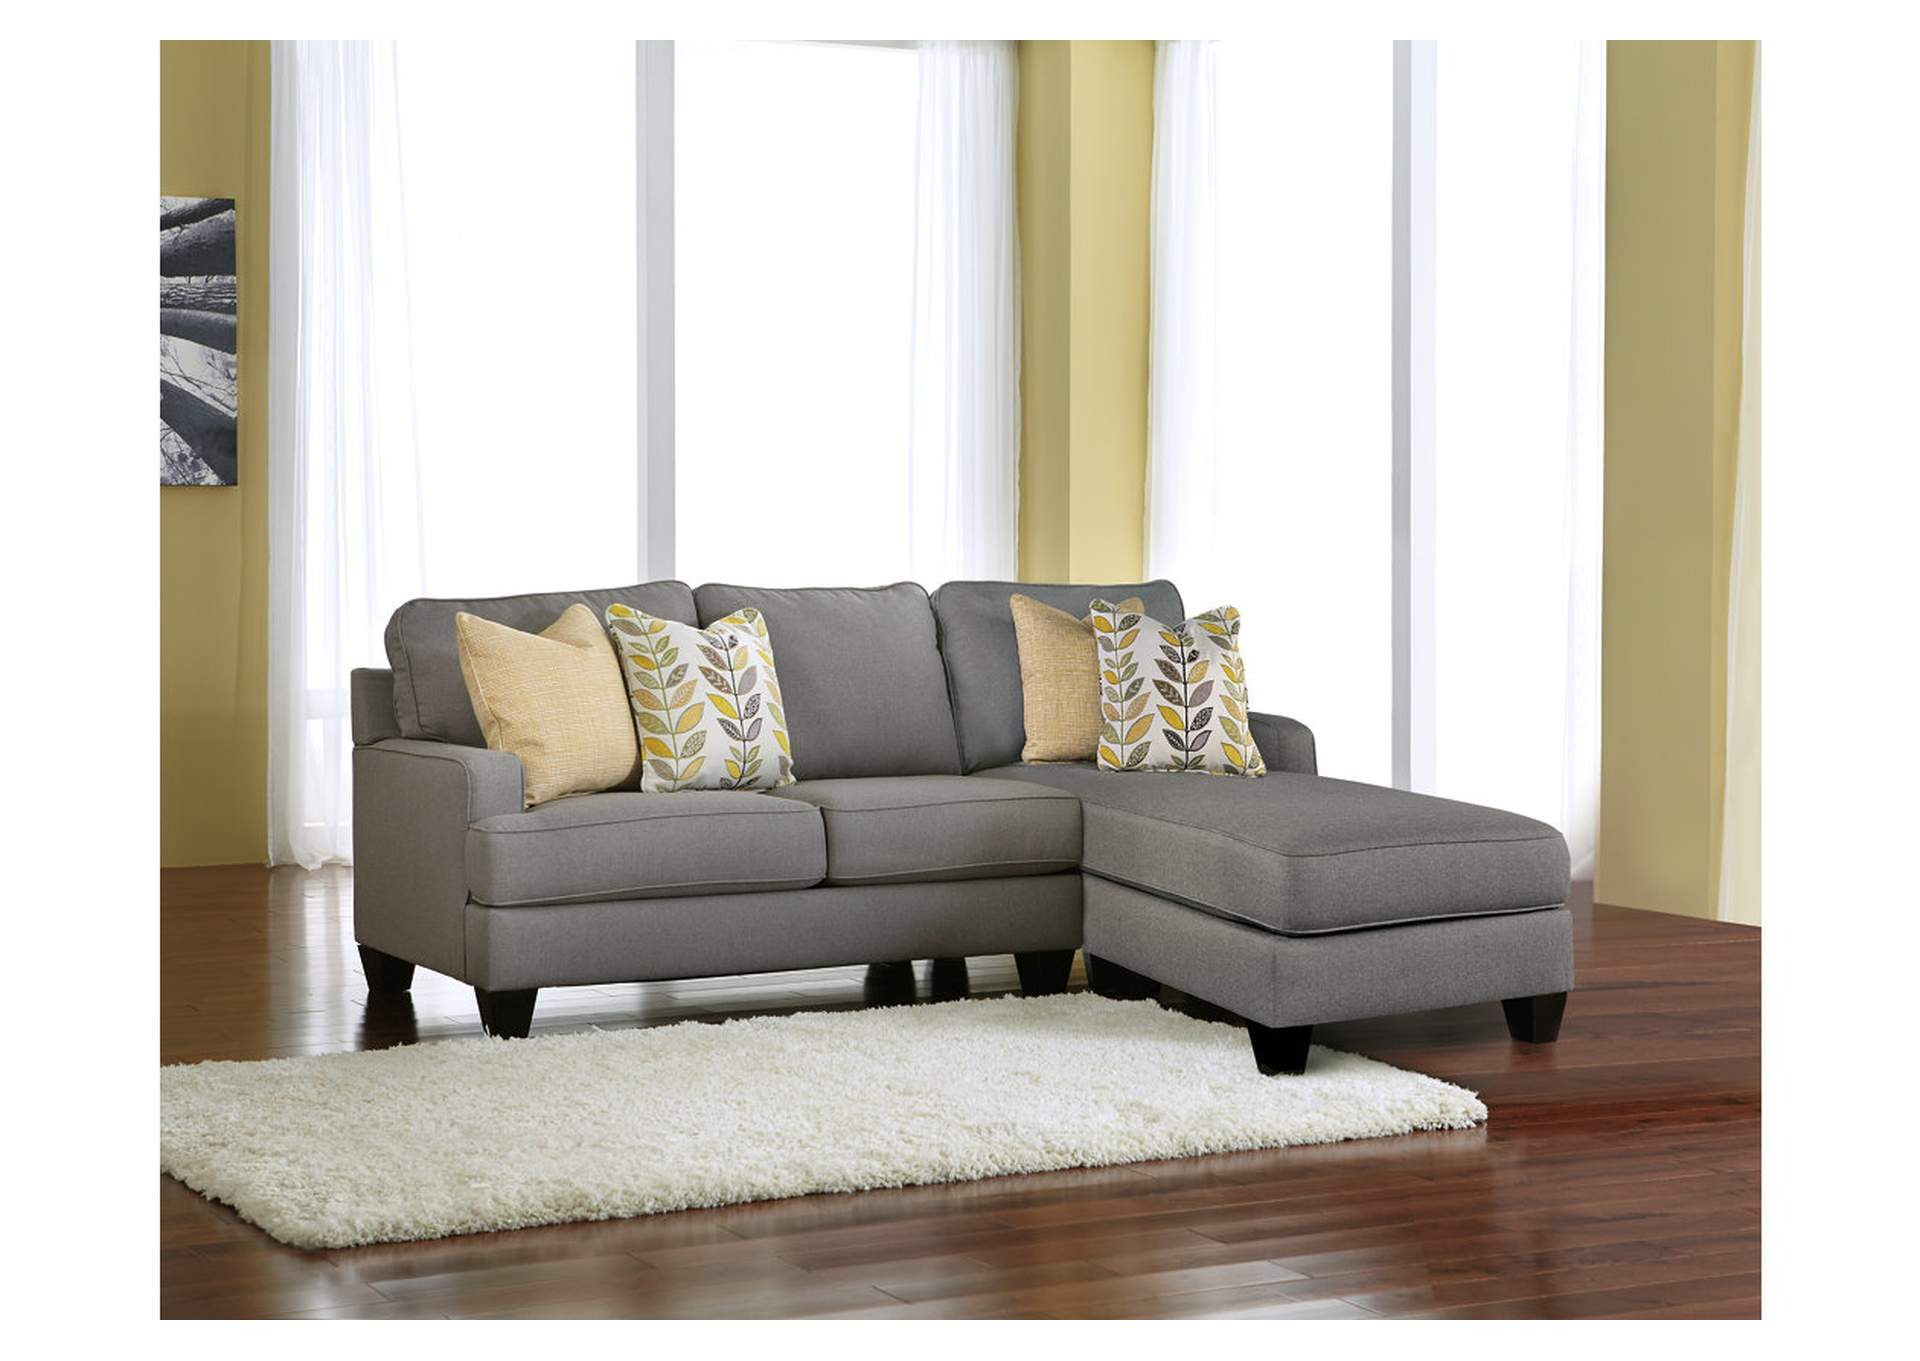 Furniture palace chamberly alloy chaise end sectional for Chaise end sofas